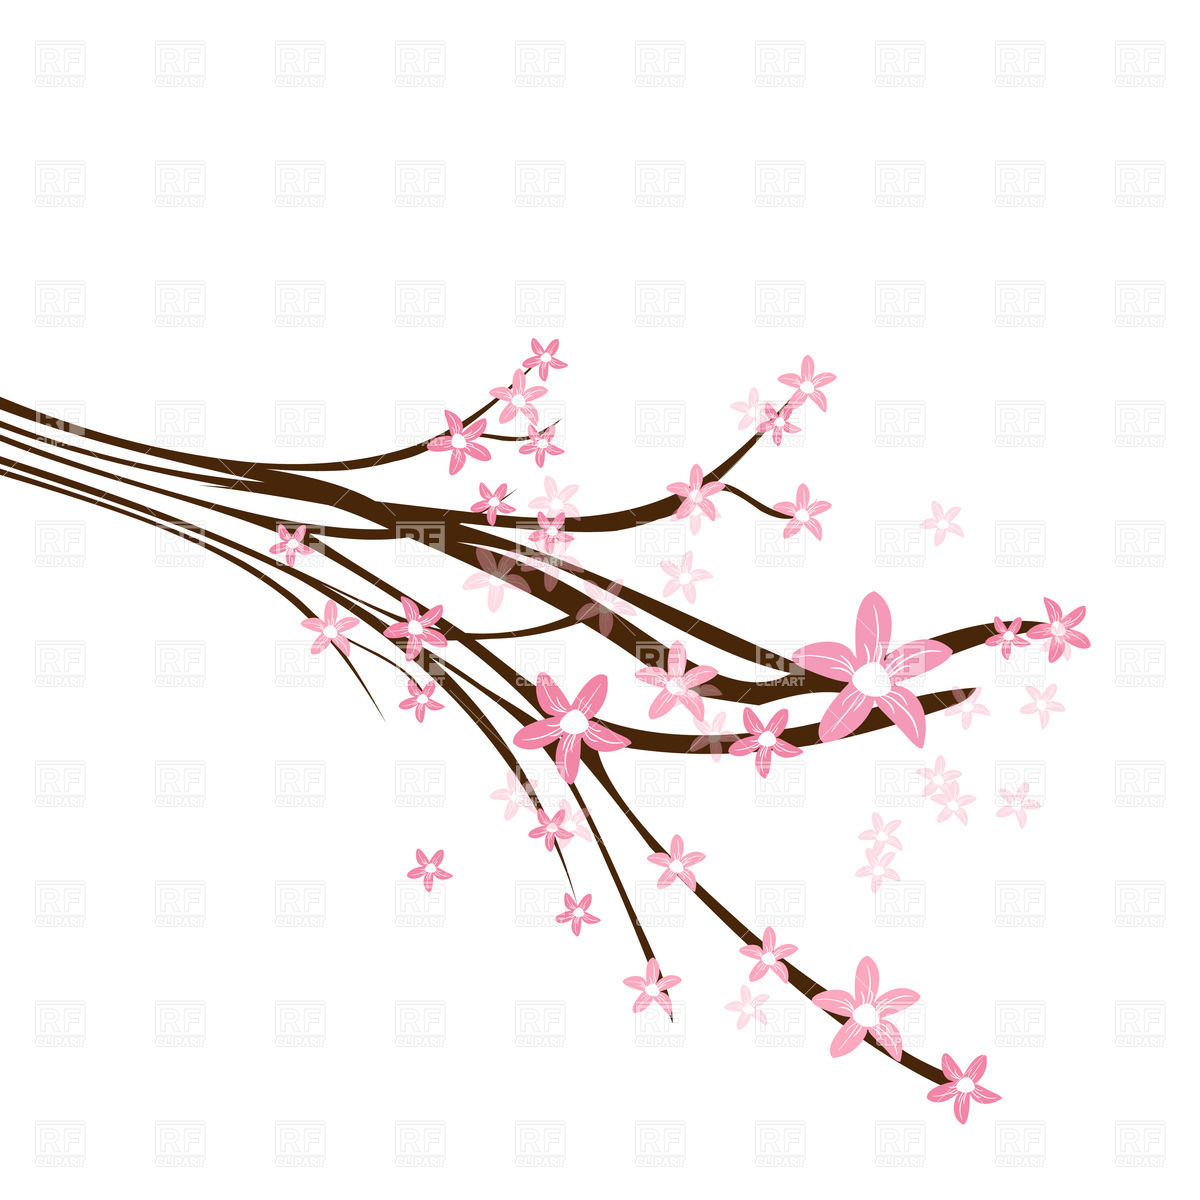 Blossoming cherry branch Vector Image #24528.